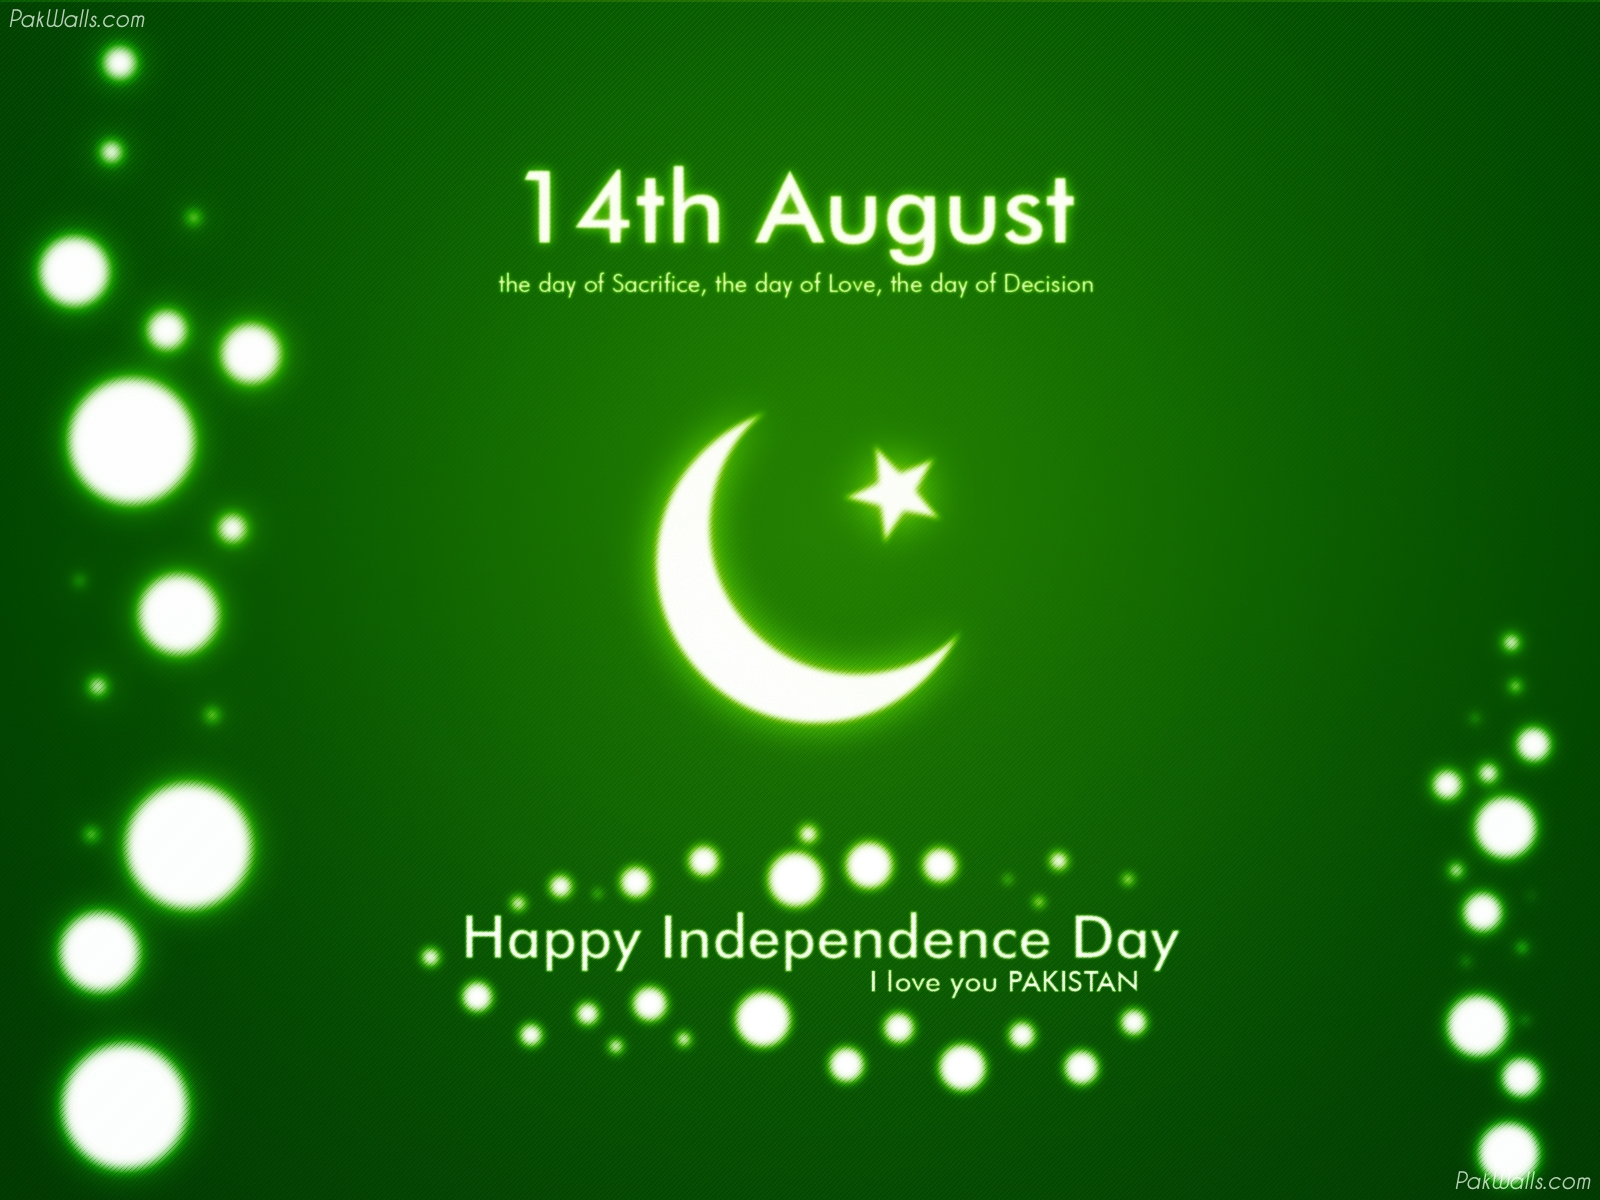 Pakistan Independence Day Wallpapers 14 August Wallpapers ALHOMAT 1600x1200